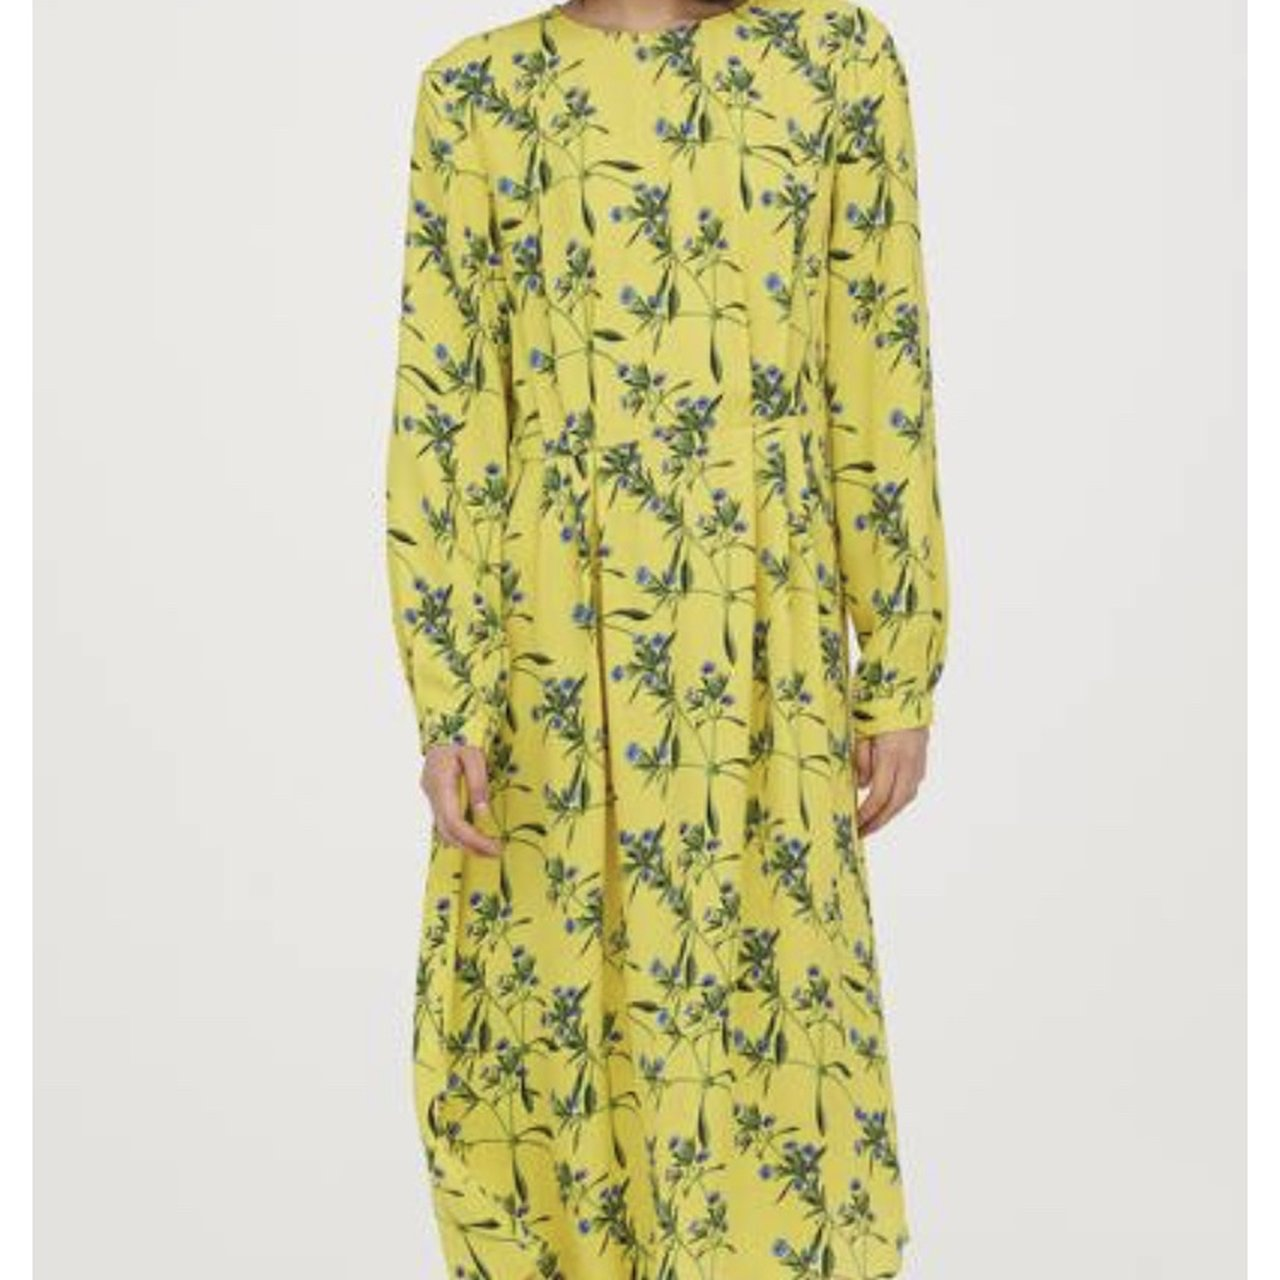 c10d2aae5a42e @meganalicehart. 9 months ago. London, United Kingdom. H&M yellow floral  patterned dress ...